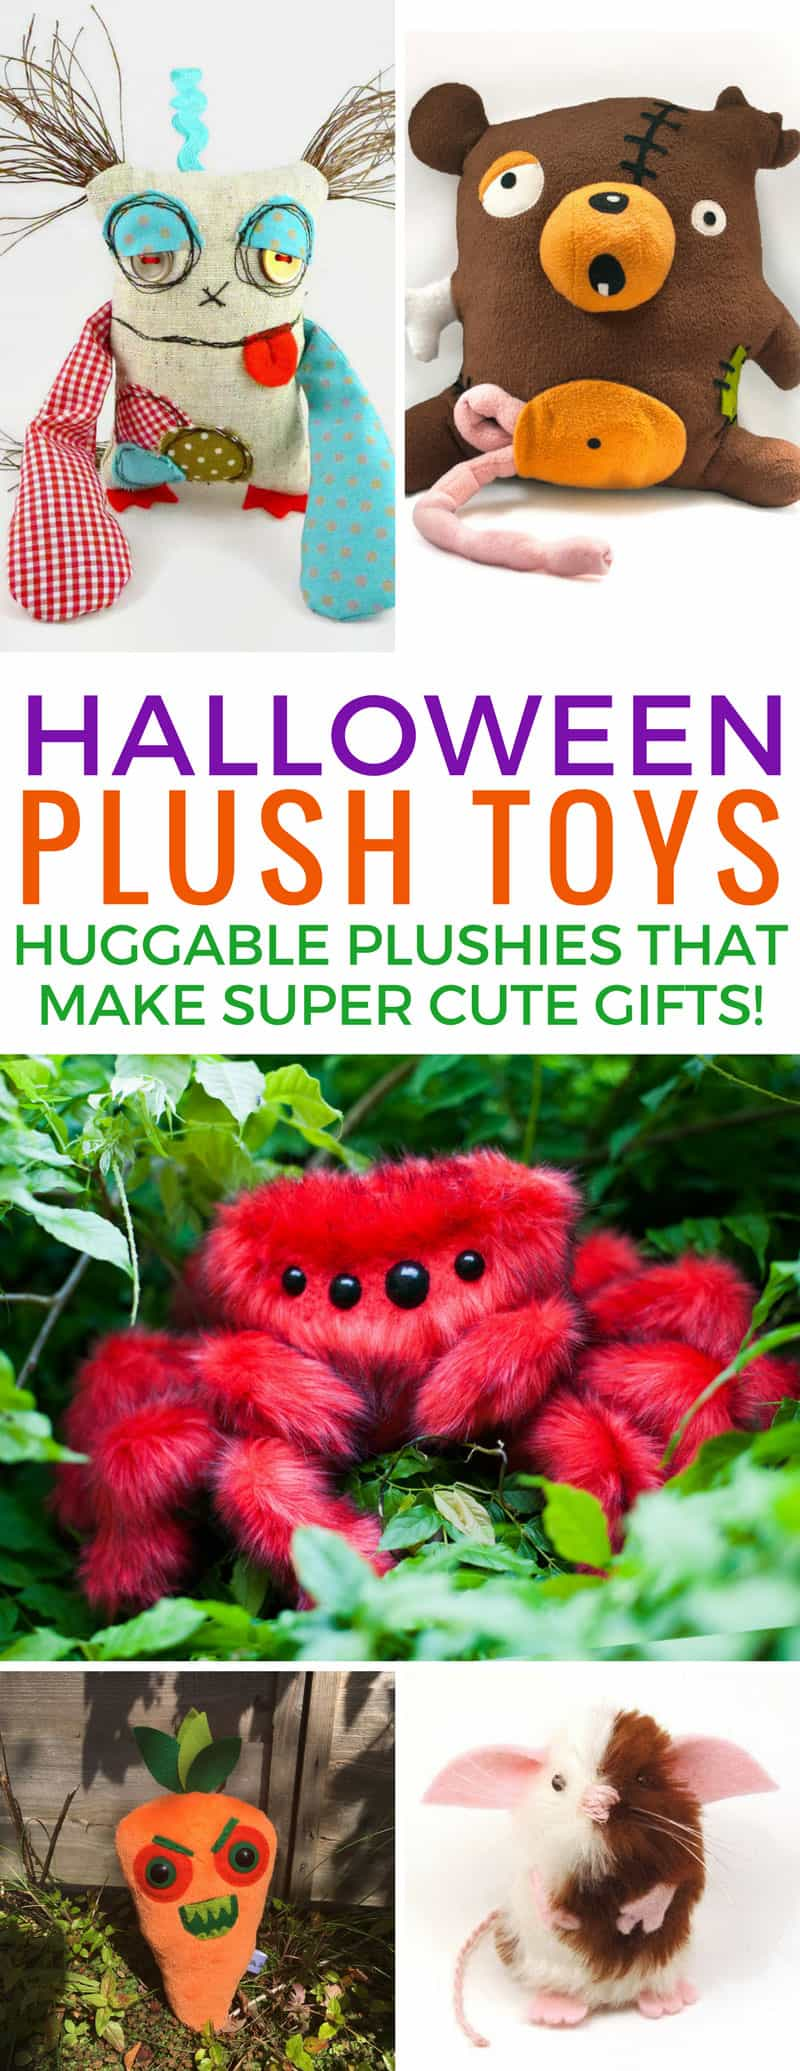 So many great plush Halloween toys to choose from - that spider is totally creepy! Thanks for sharing!